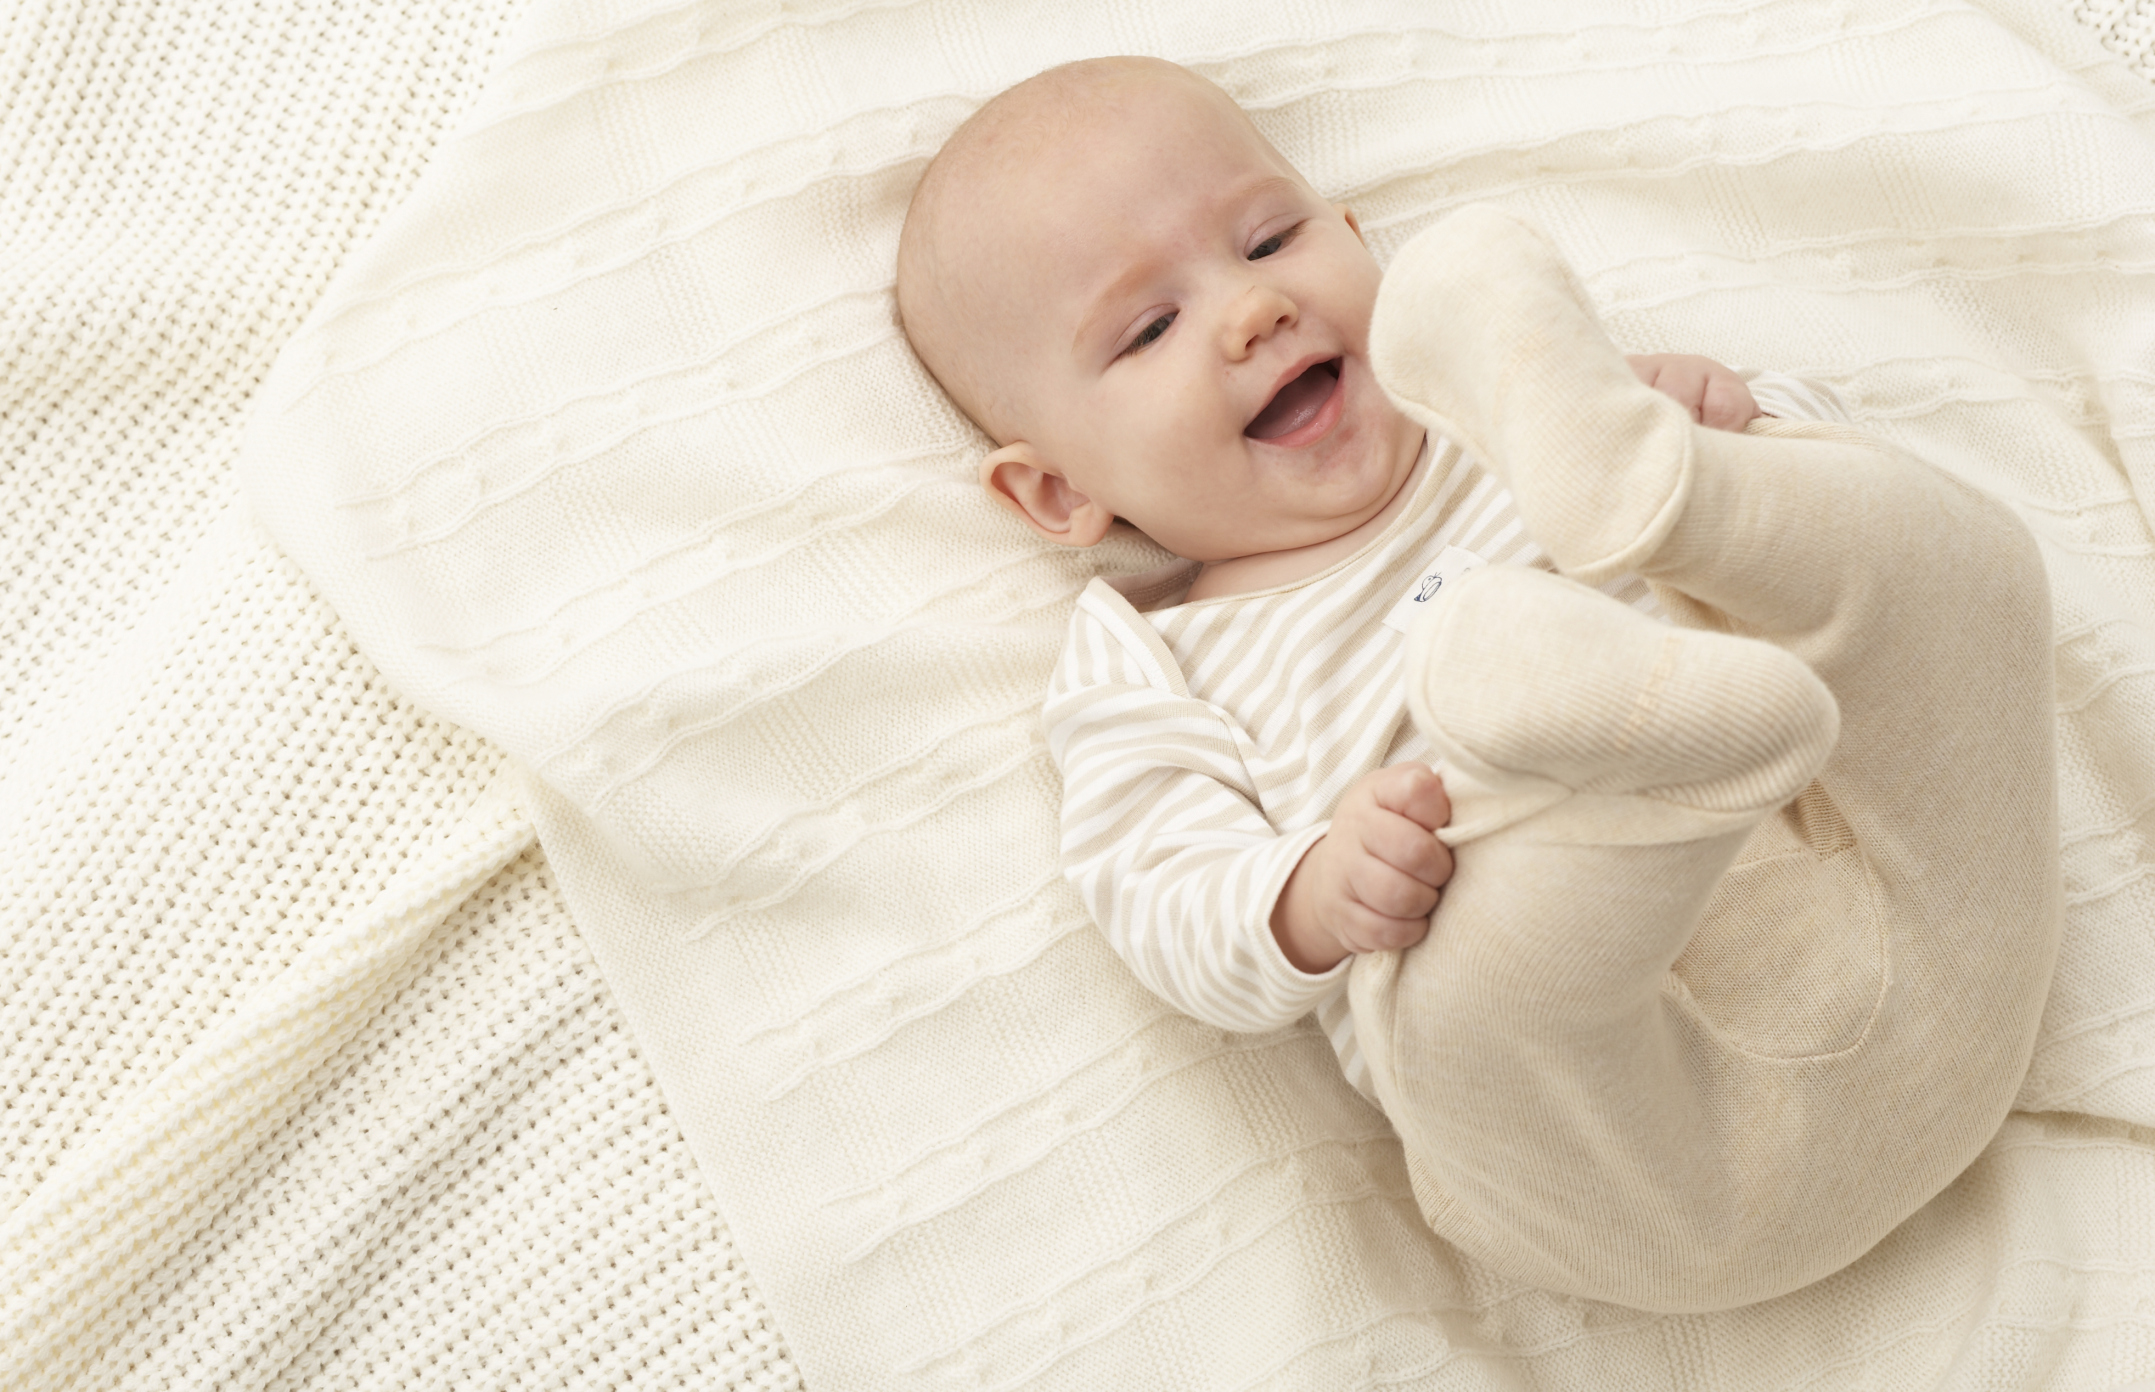 Why the newborn hiccups